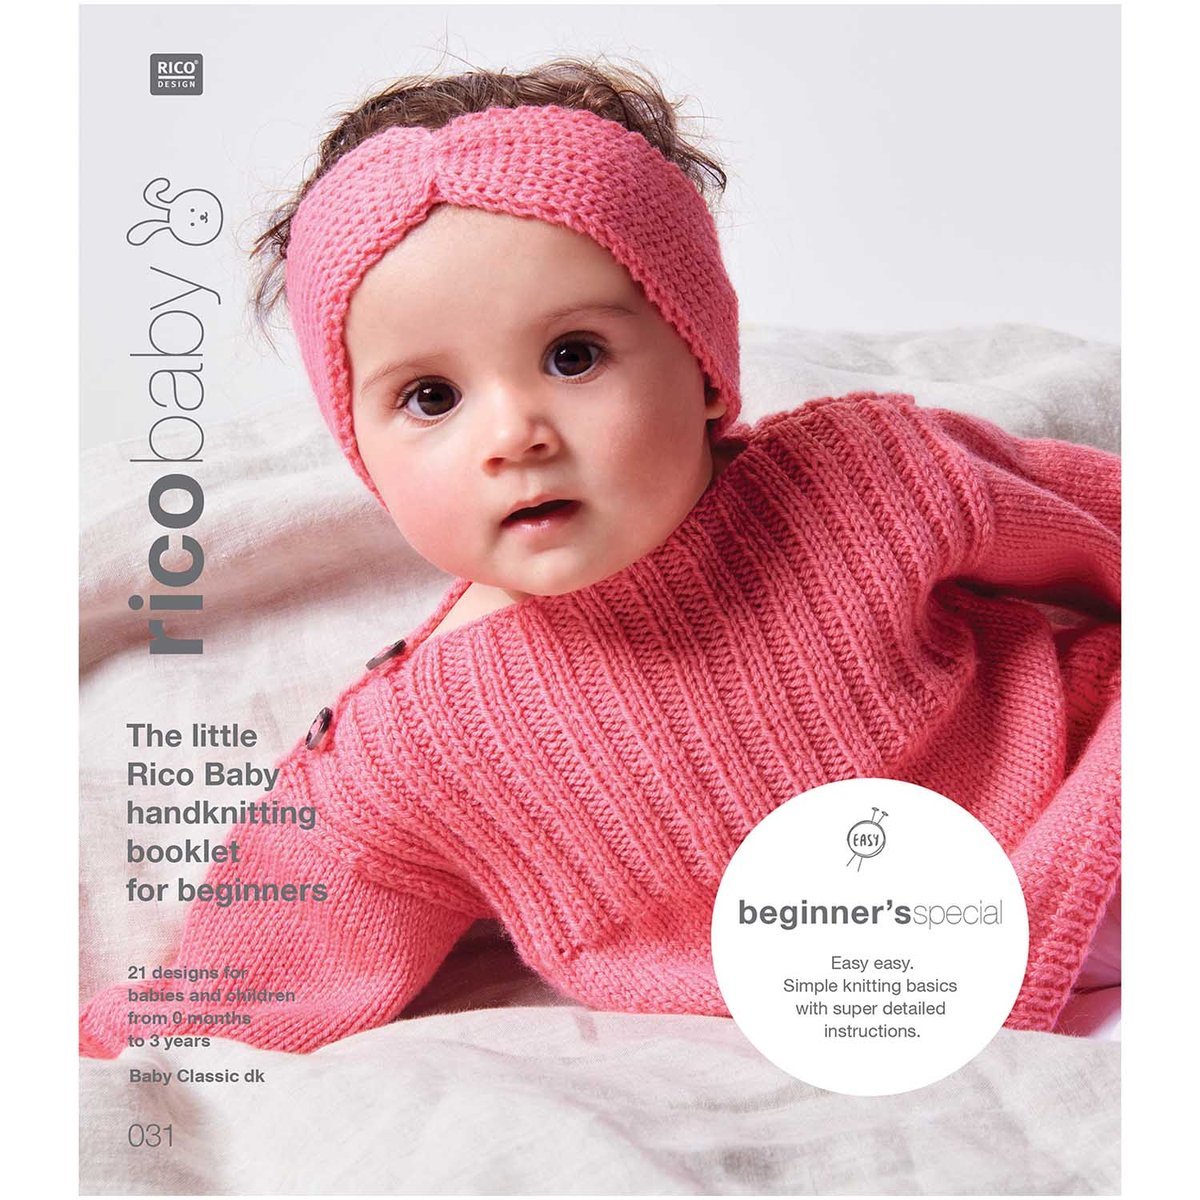 Rico Baby Hand Knit Book: Beginner's Special for DK Yarn